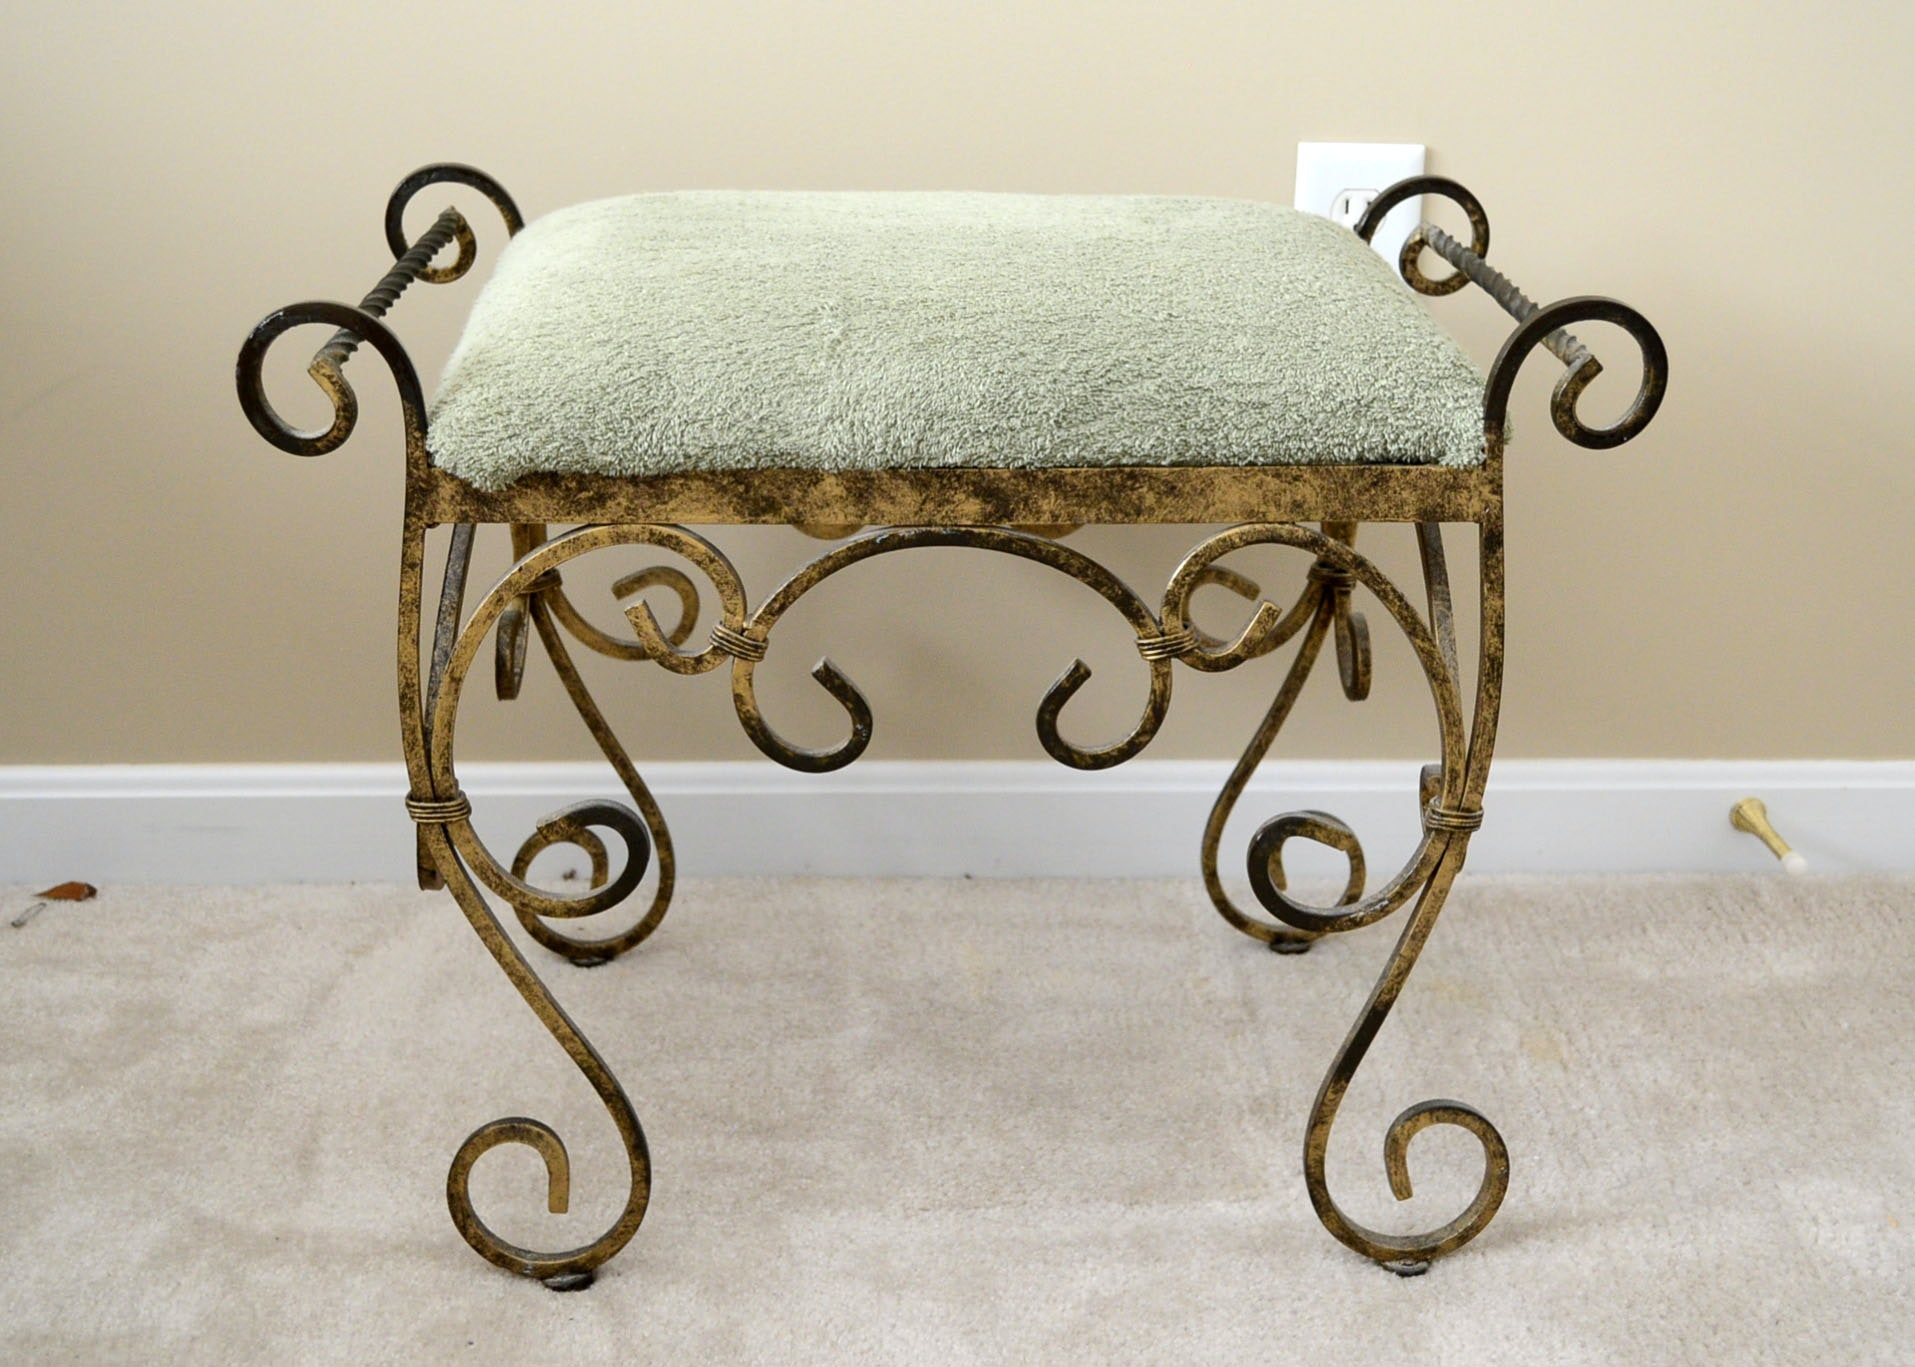 Wrought Iron Vanity wrought iron vanity stool : ebth